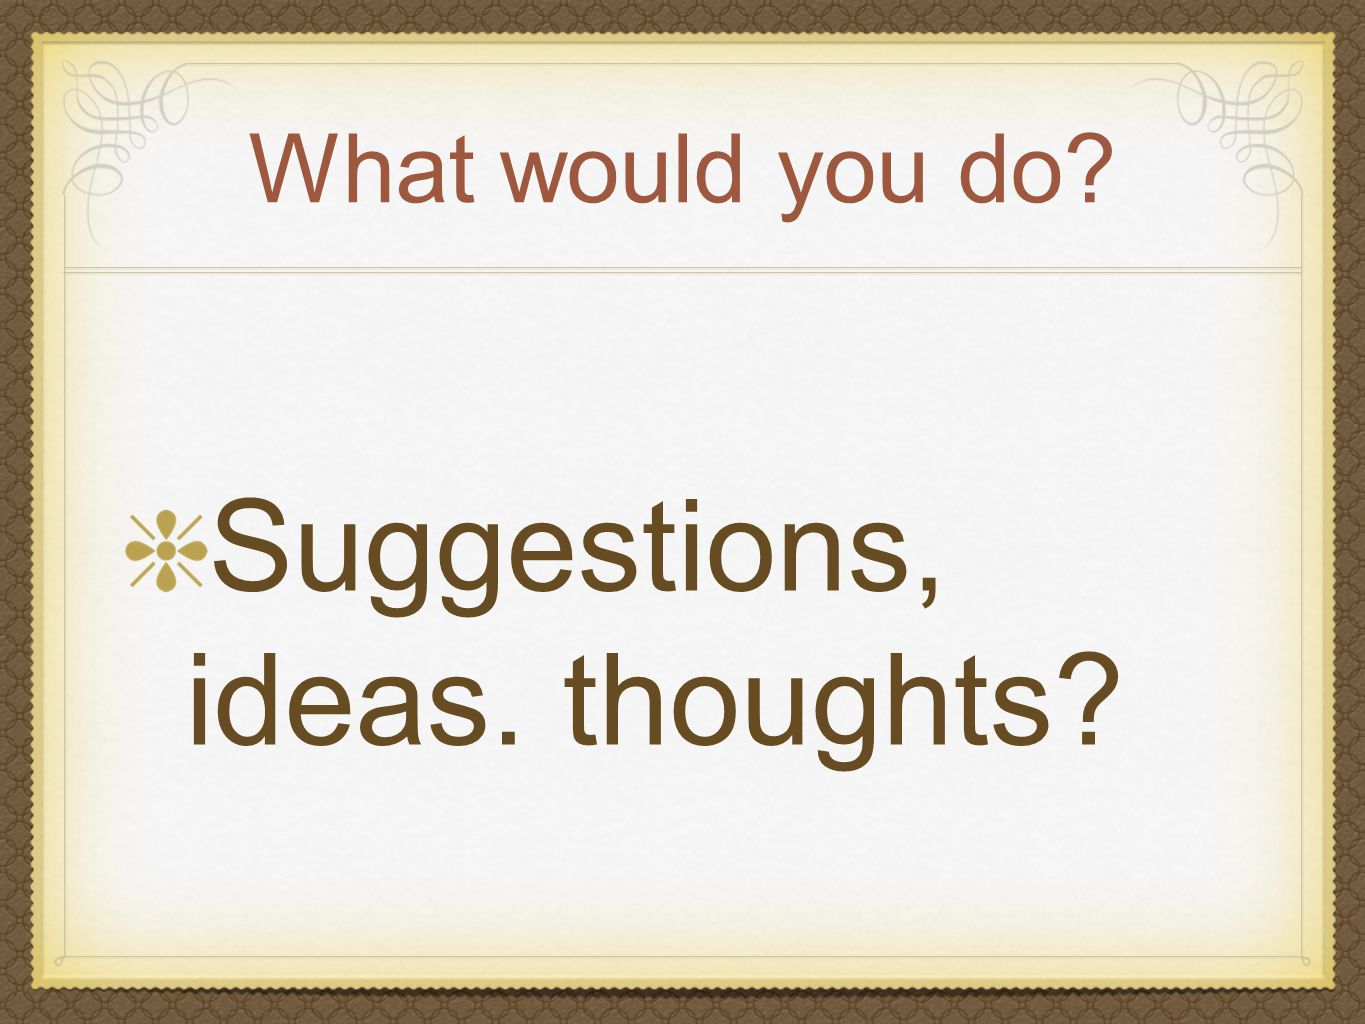 What would you do? Suggestions, ideas. thoughts?